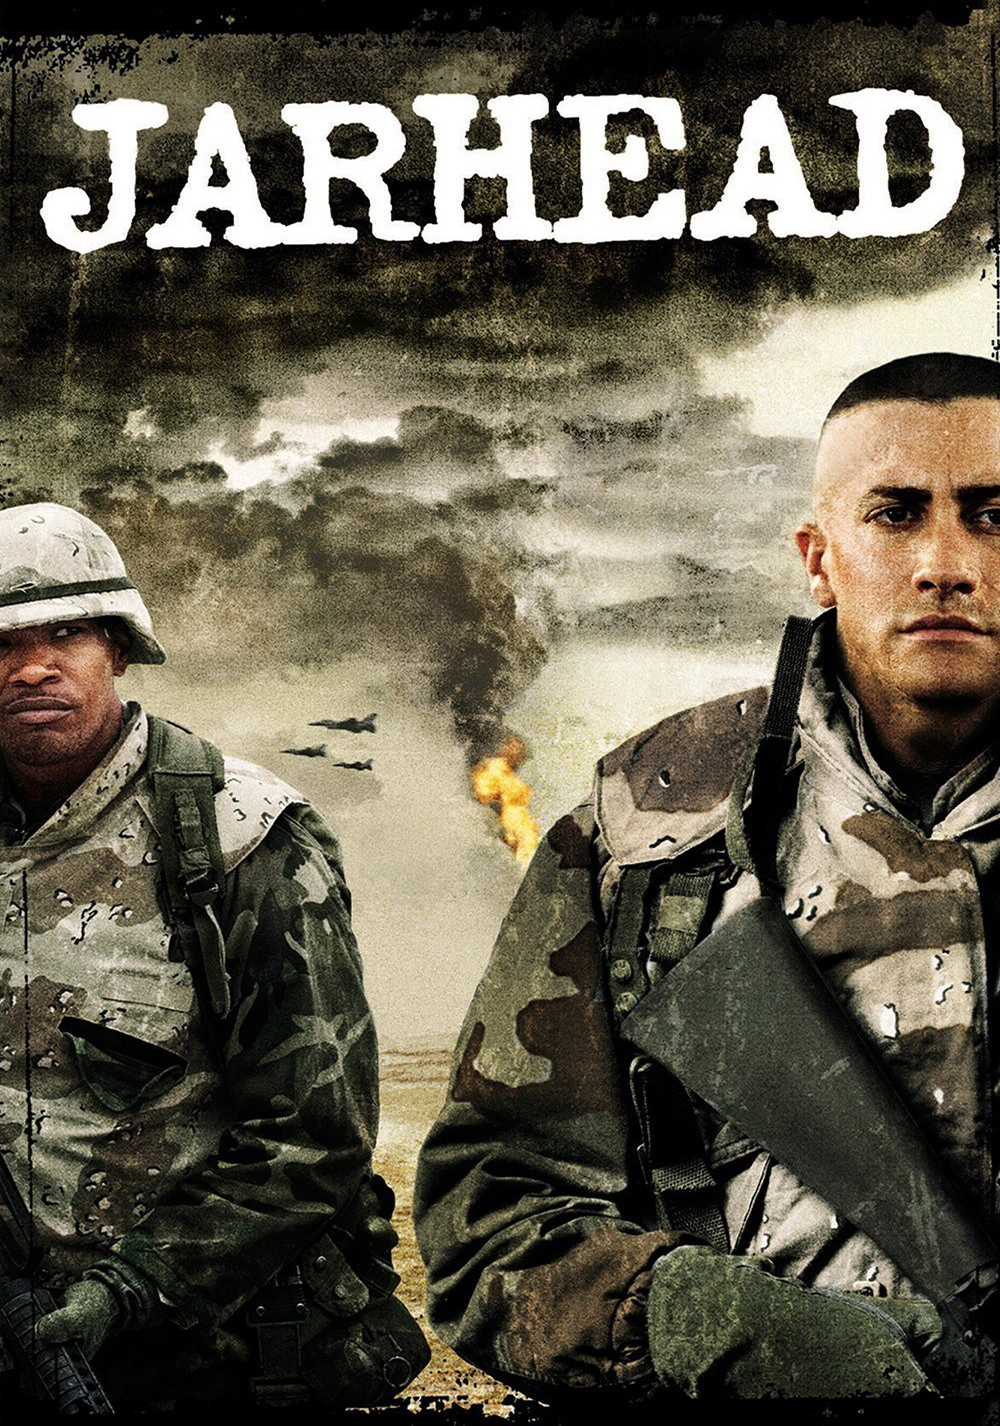 jarhead an instrumental film in american war This paper explores the relationship between masculinity, the body and the military through a close reading of the film jarhead drawing on a foucauldian frame of.